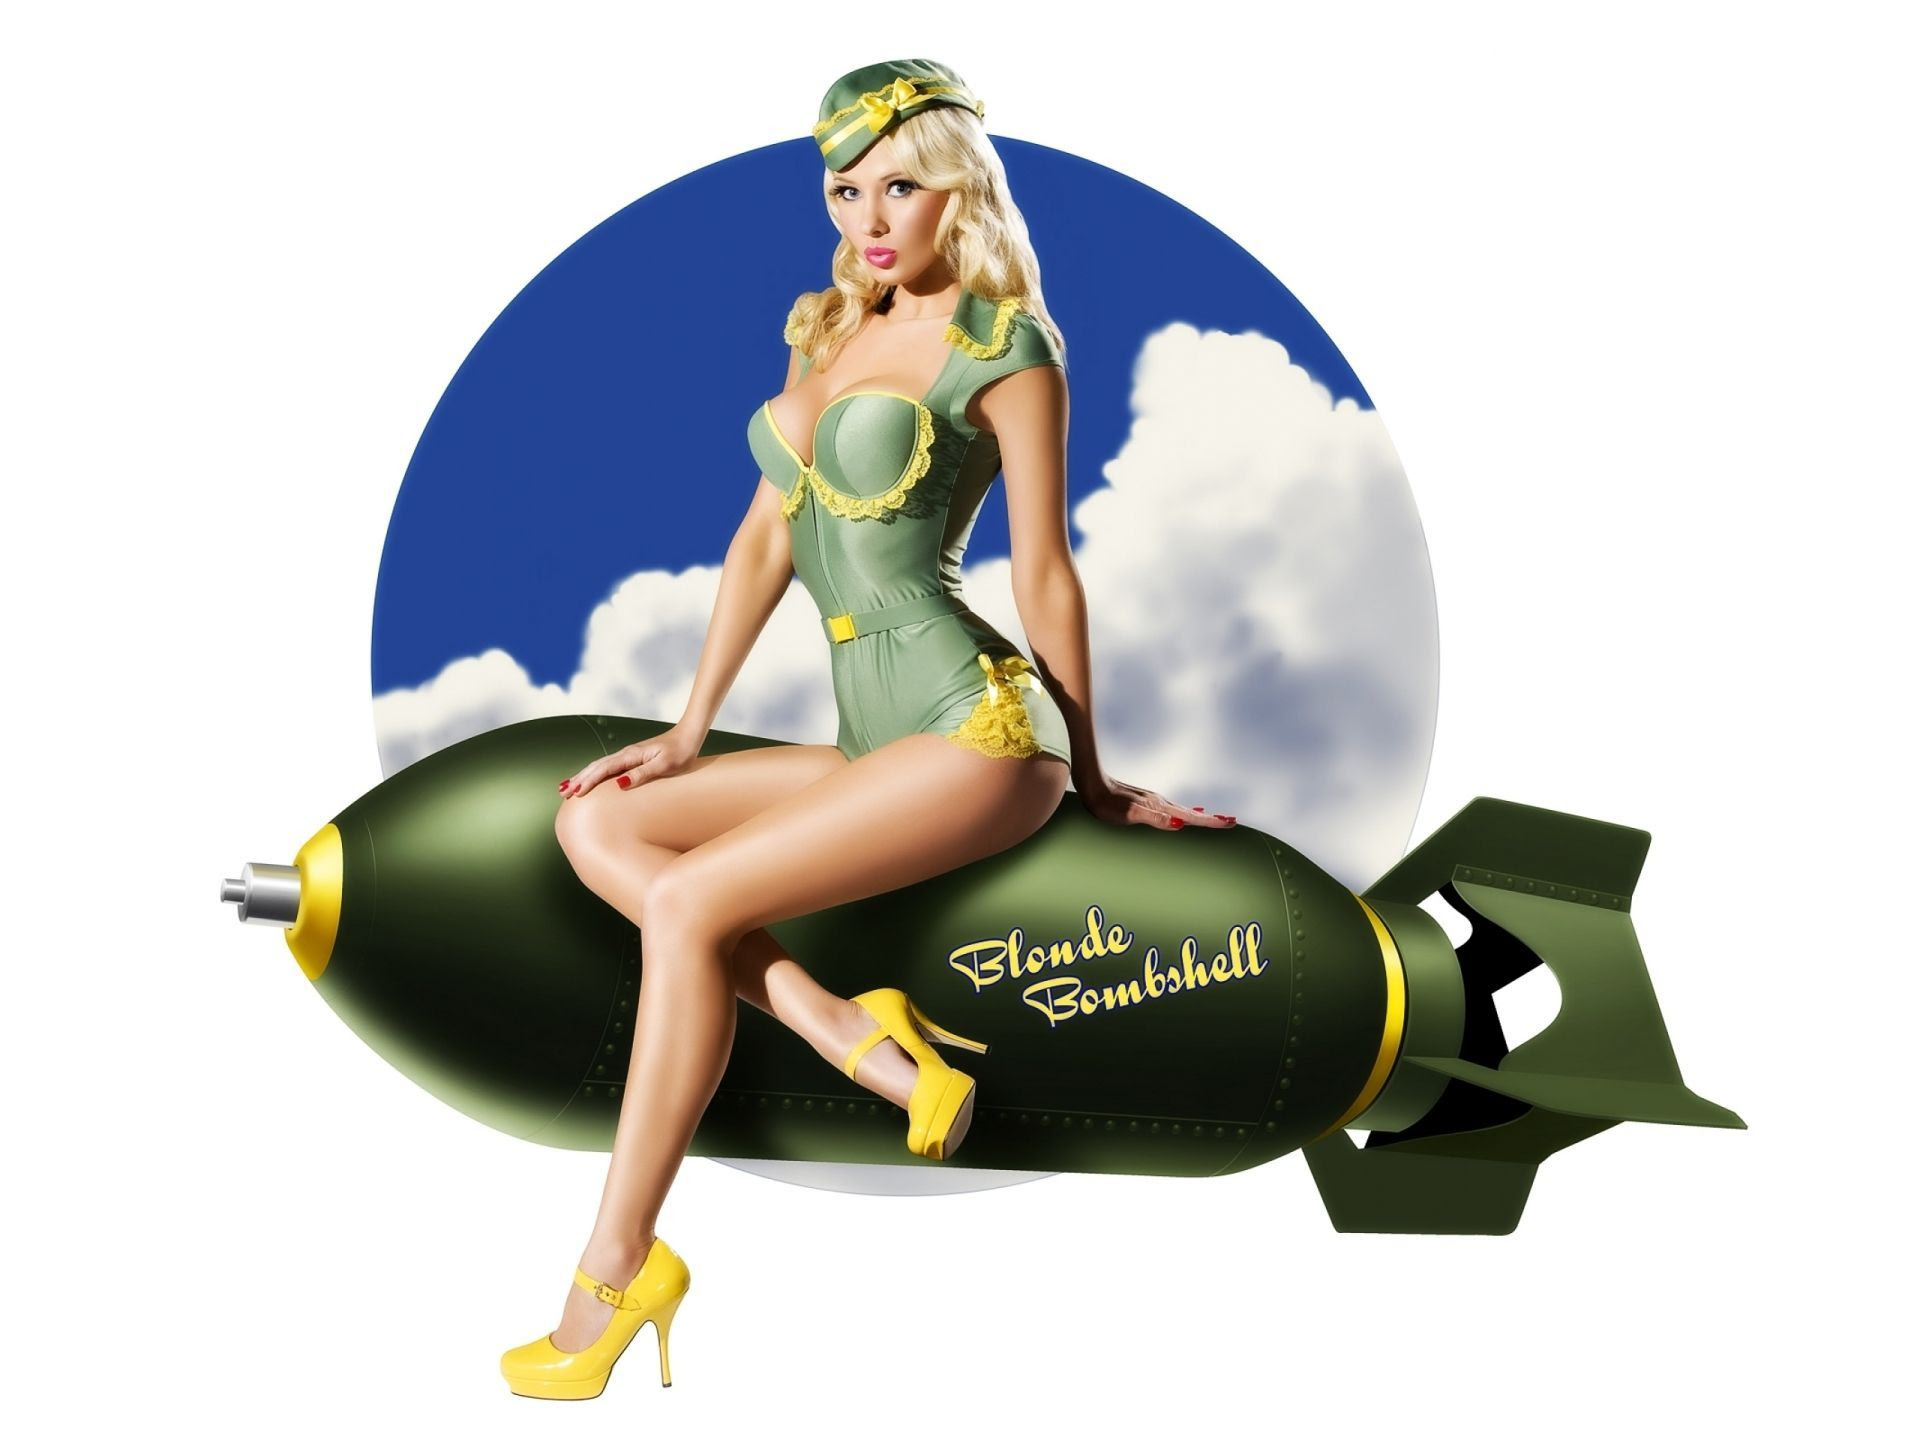 Best Wallpaper Of The Pin Up Girl Photo Of Pinap The Atomic Bomb